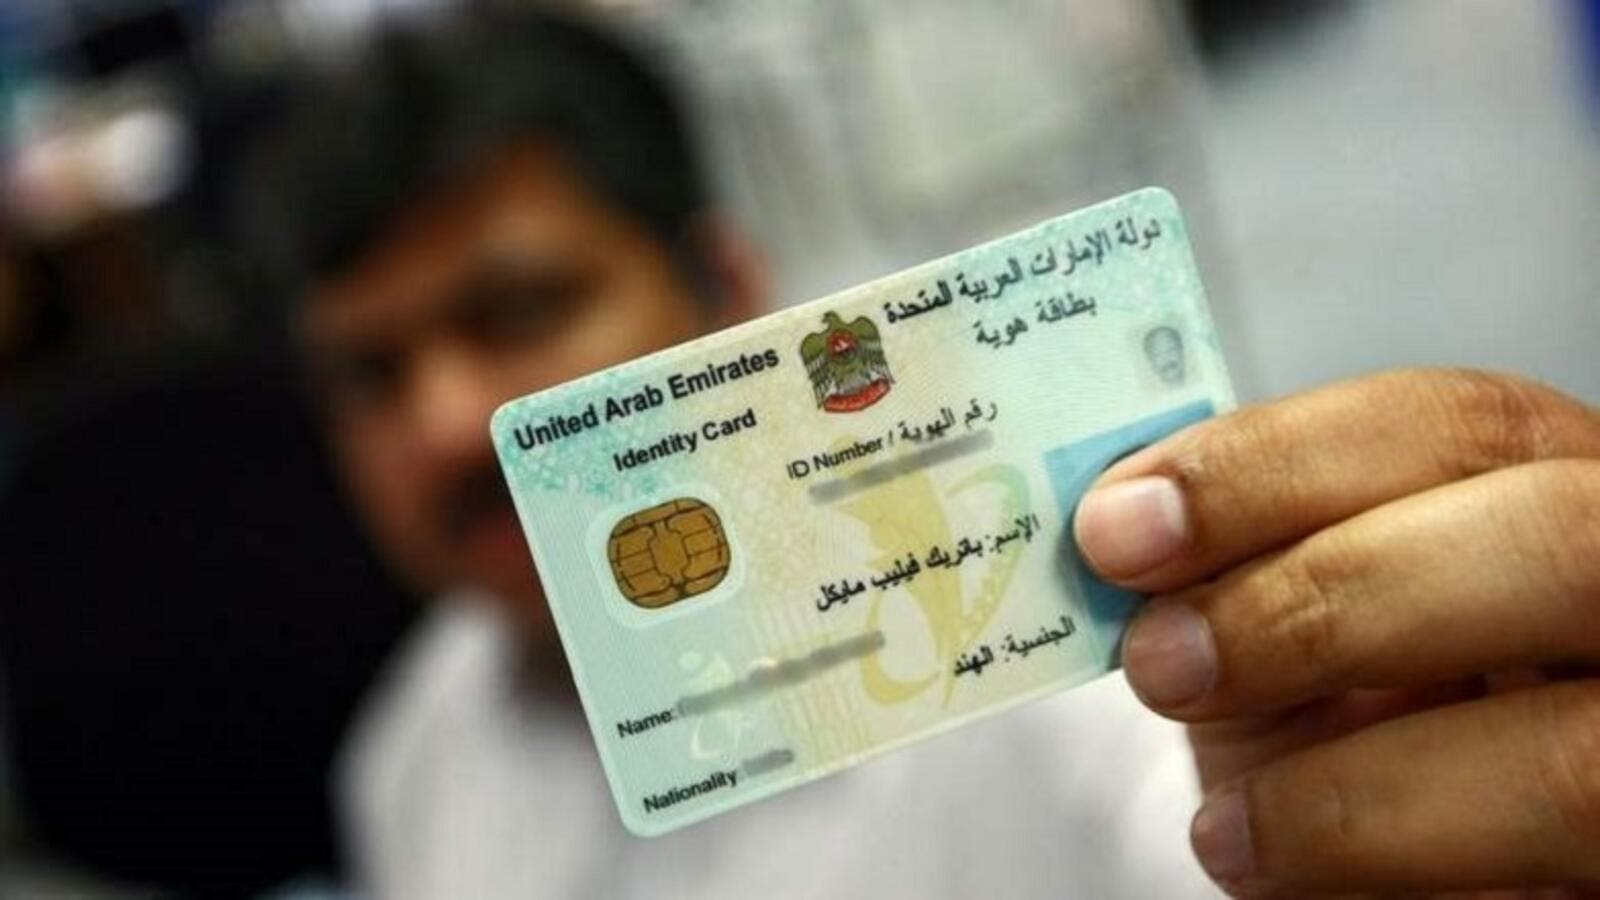 Every Emirates ID has a PIN that contains all your sensitive information. (Khaleej Times)